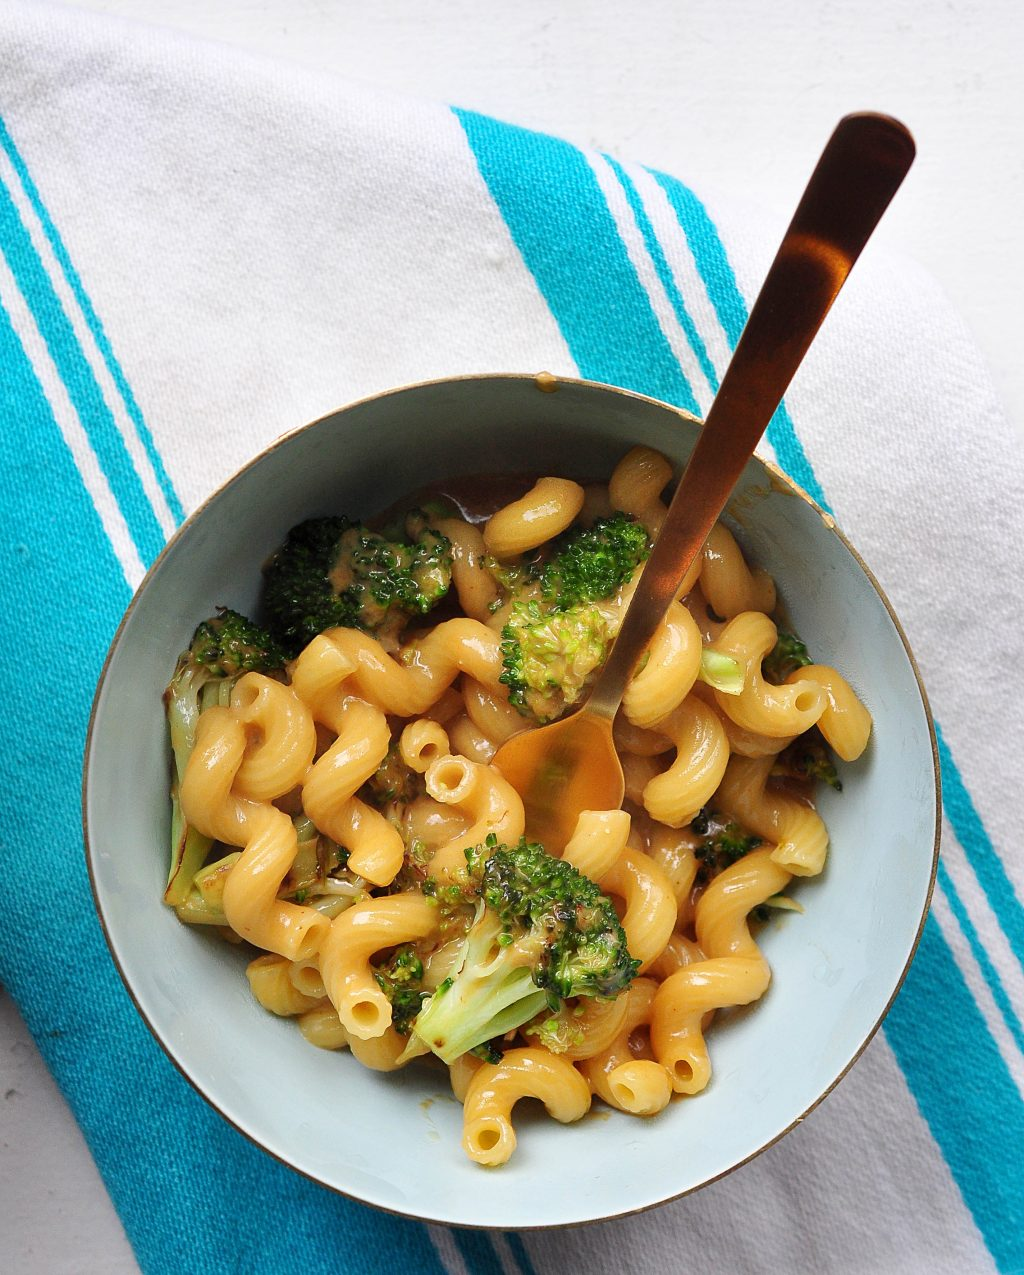 welsh rarebit mac and cheese with broccoli in a bowl with a gold fork